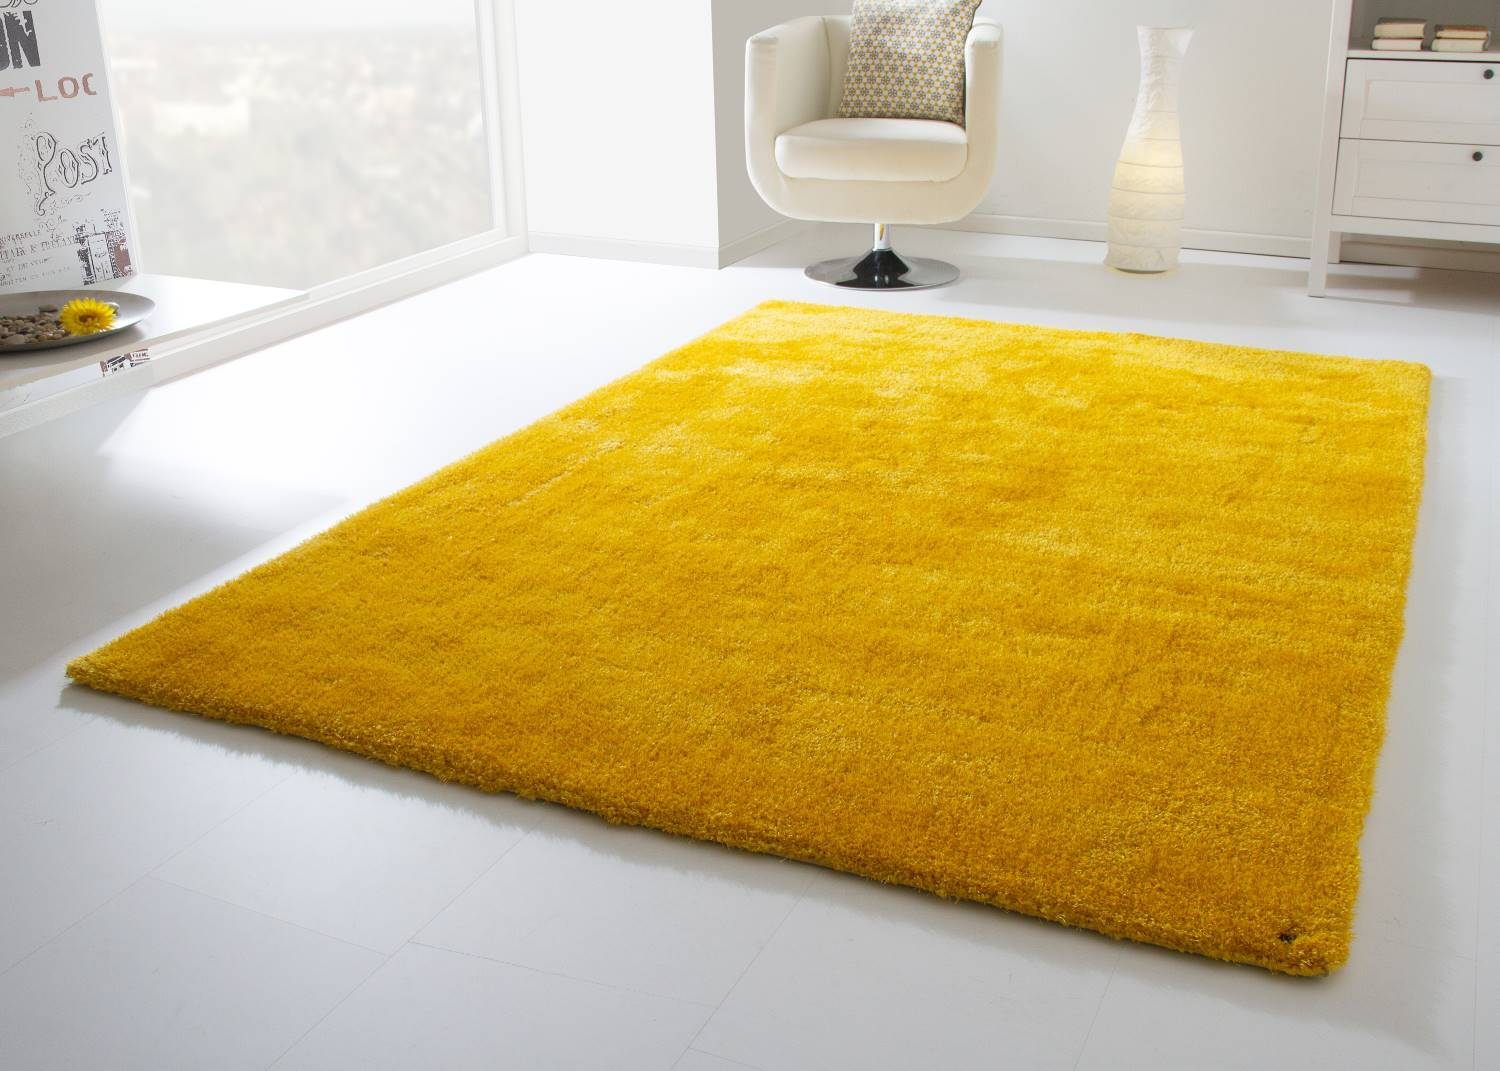 Teppich Bunt Hochflor Hochflor Teppich Tom Tailor Soft Global Carpet